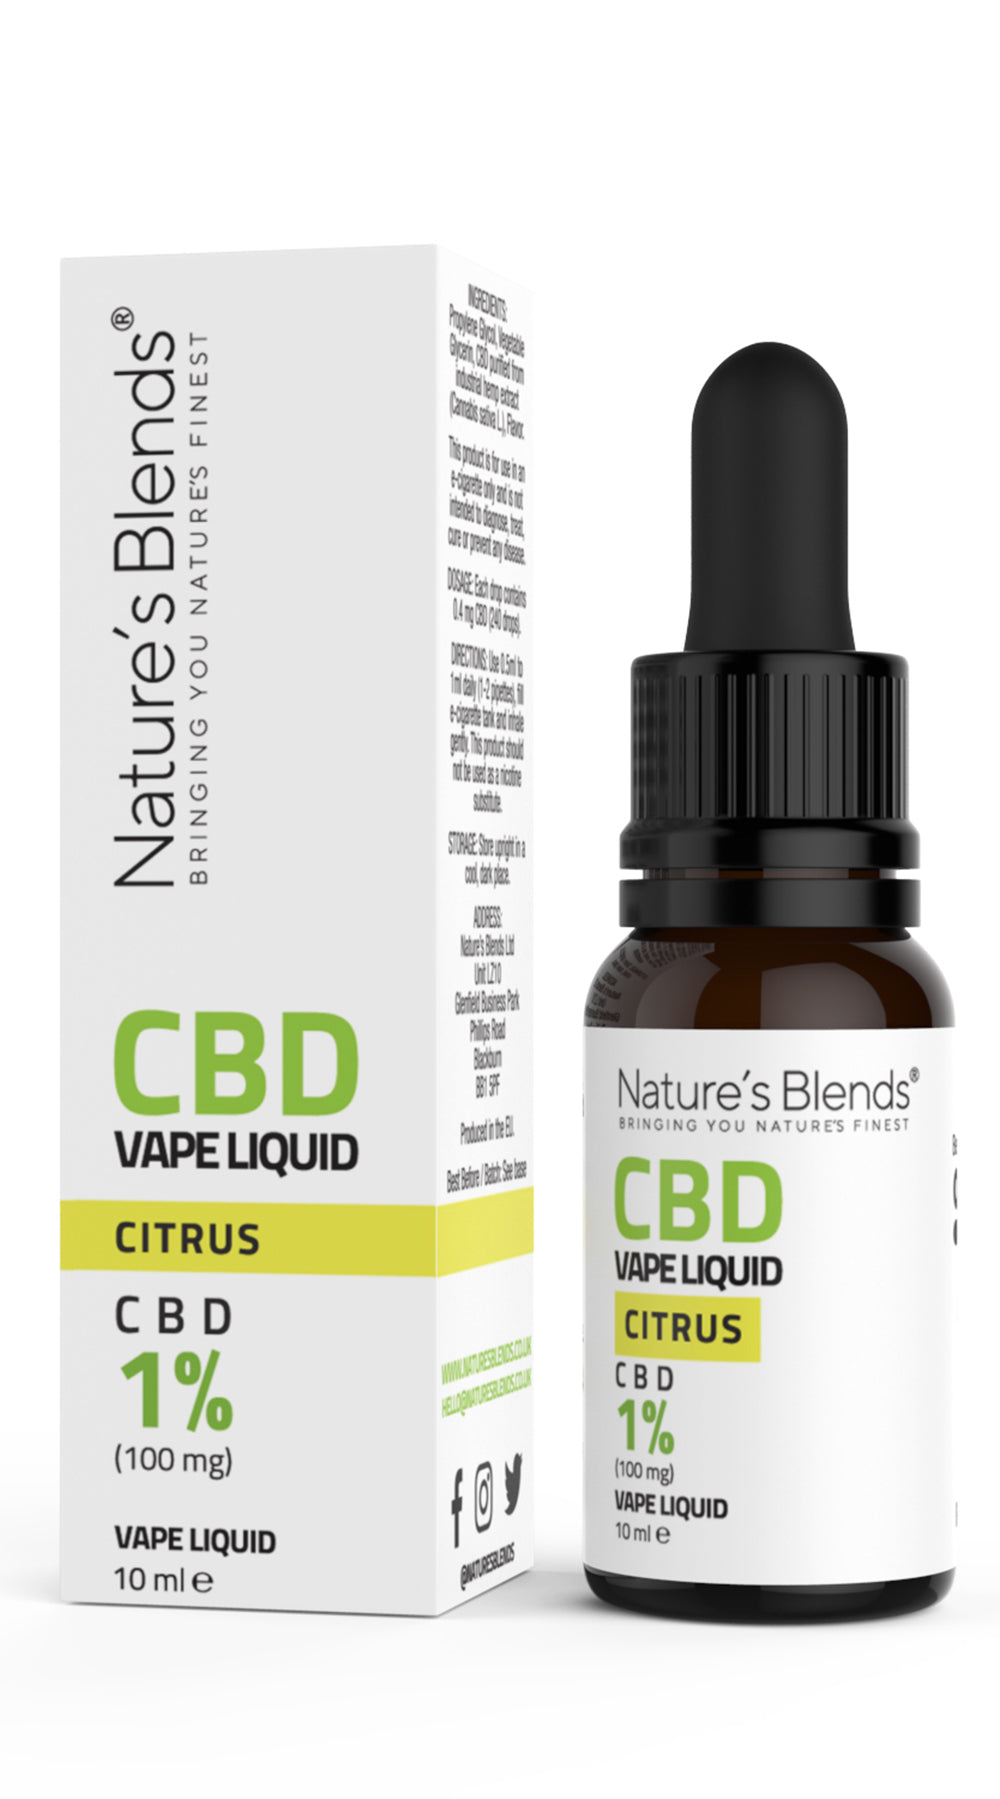 A 10ml bottle of 100mg cbd vape citrus flavour along side natures blends packaging